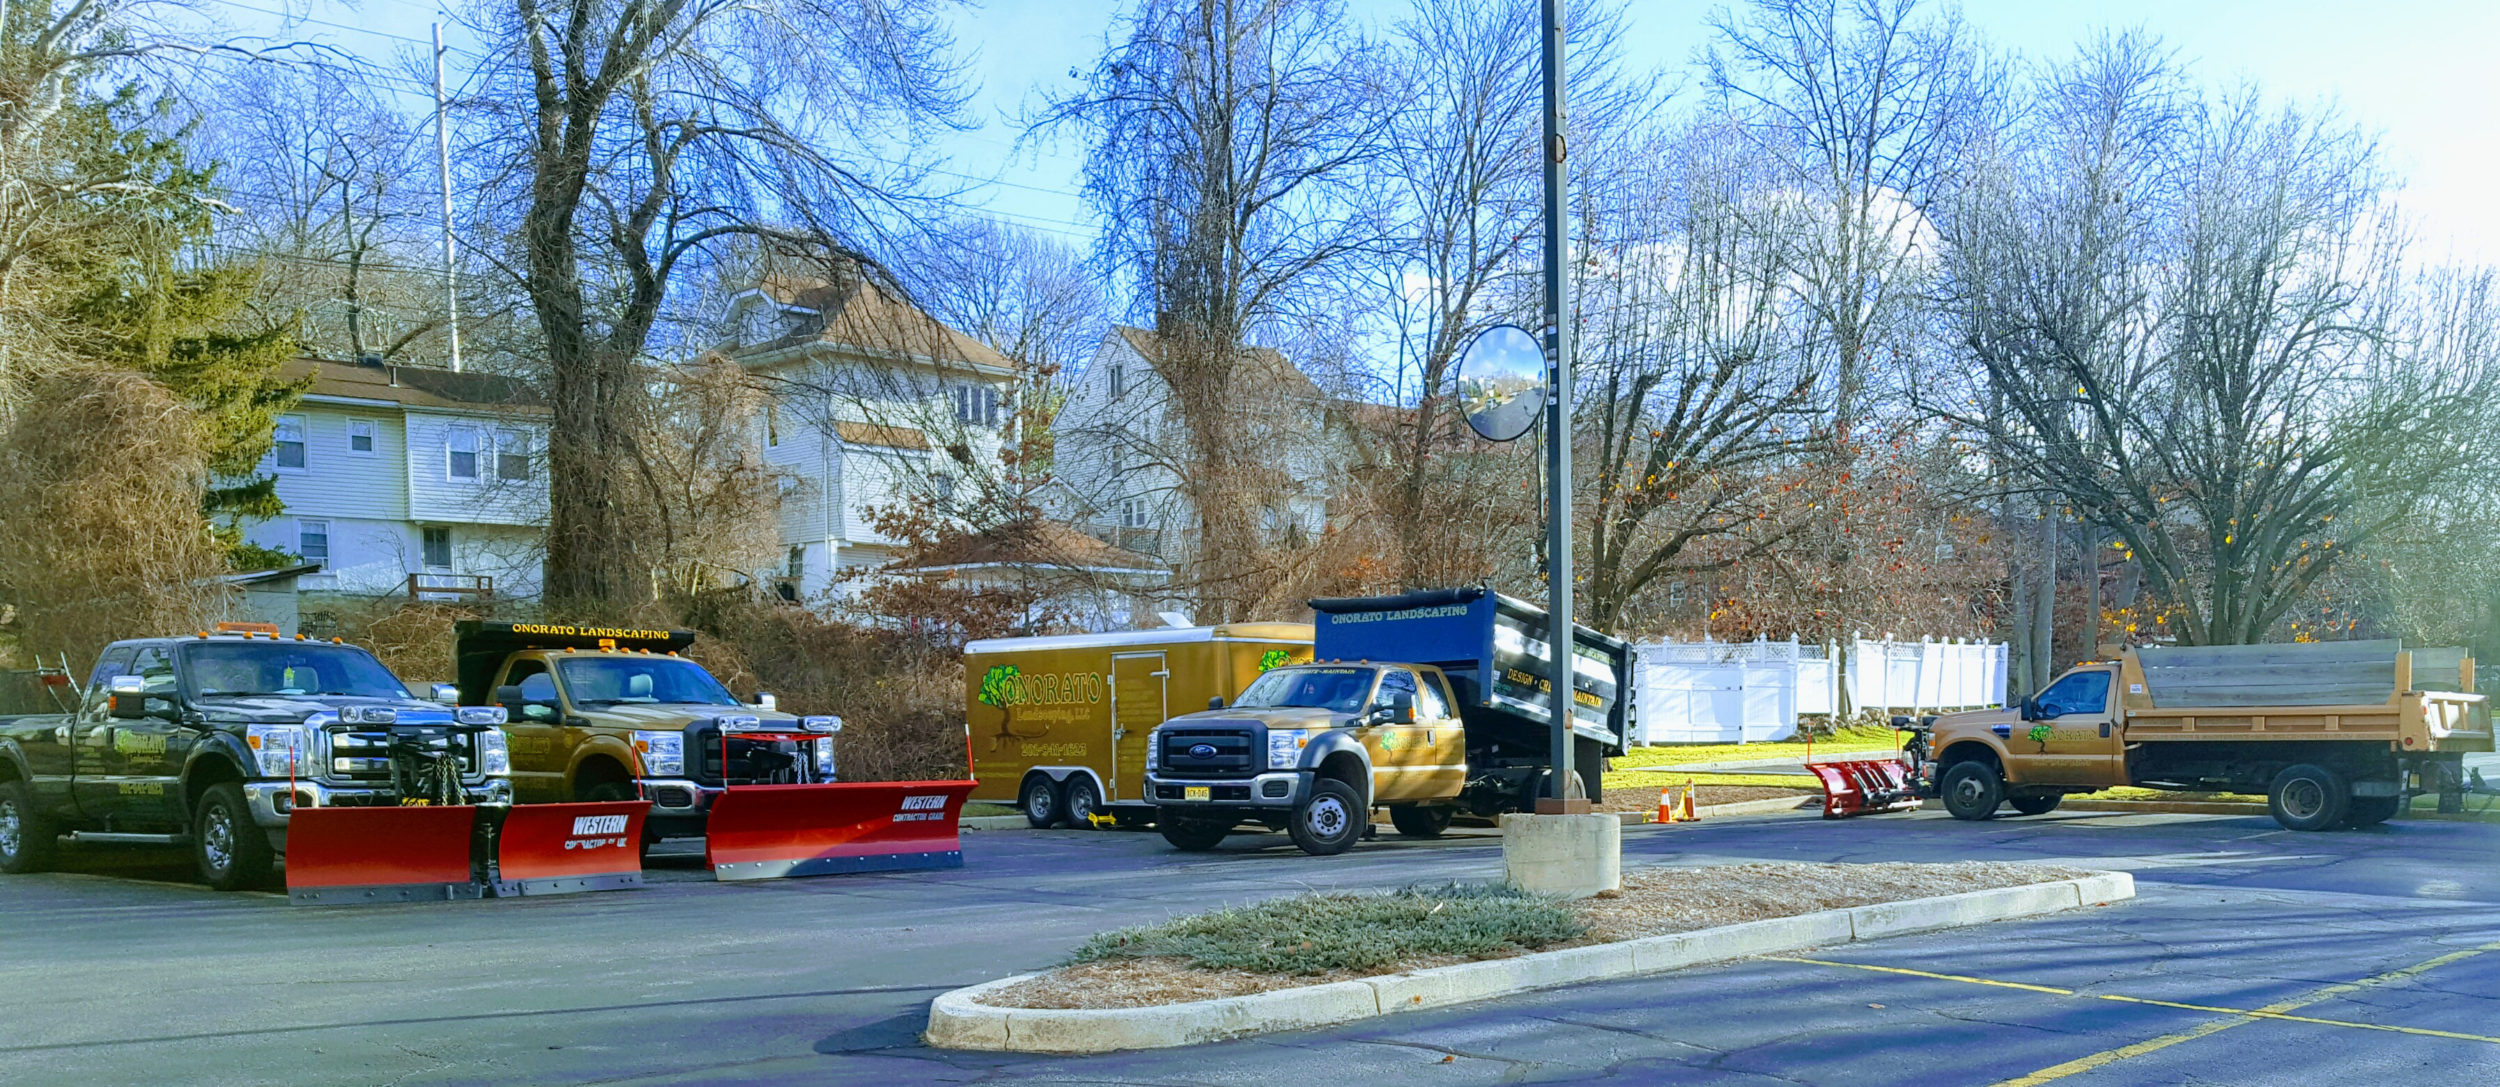 Onorato Snow removal Bergen County Trucks